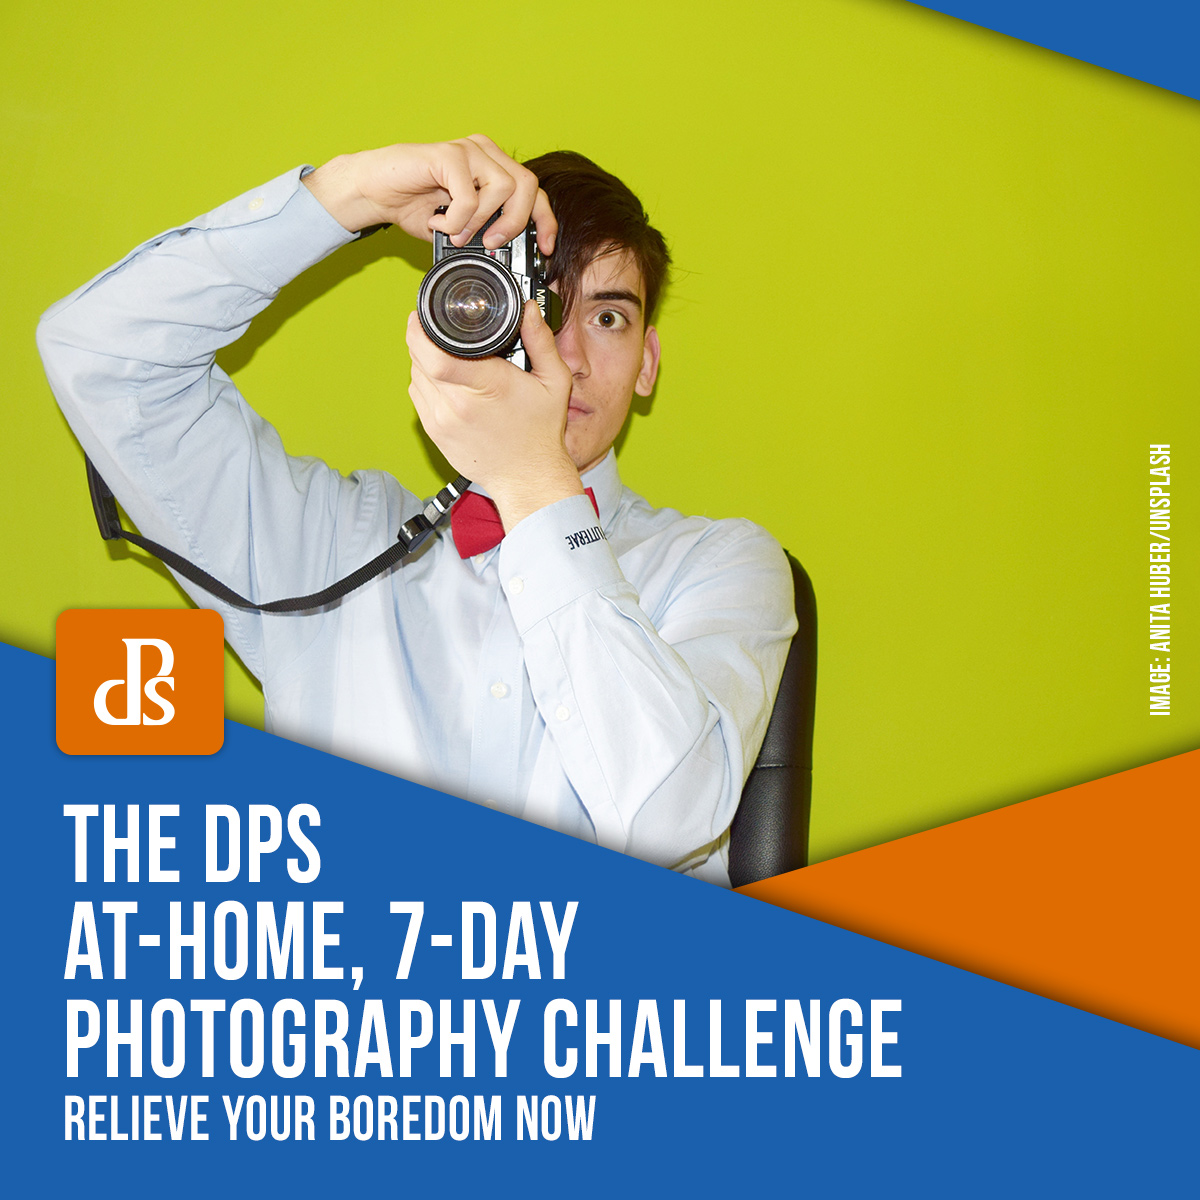 https://i0.wp.com/digital-photography-school.com/wp-content/uploads/2020/03/dps-at-home-7-day-photography-challenge.jpg?ssl=1